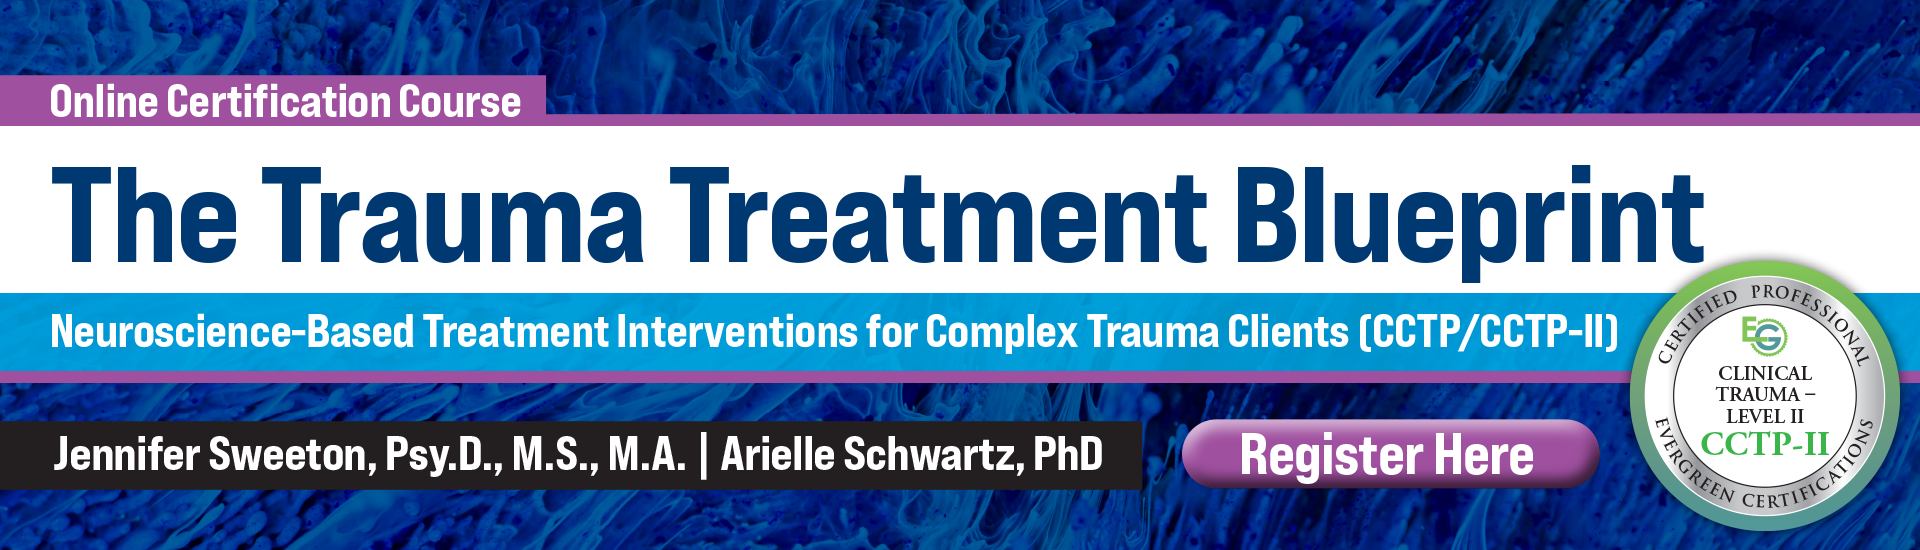 The Trauma Treatment Blueprint: Neuroscience-Based Treatment Interventions for Complex Trauma Clients (CCTP/CCTP-II)